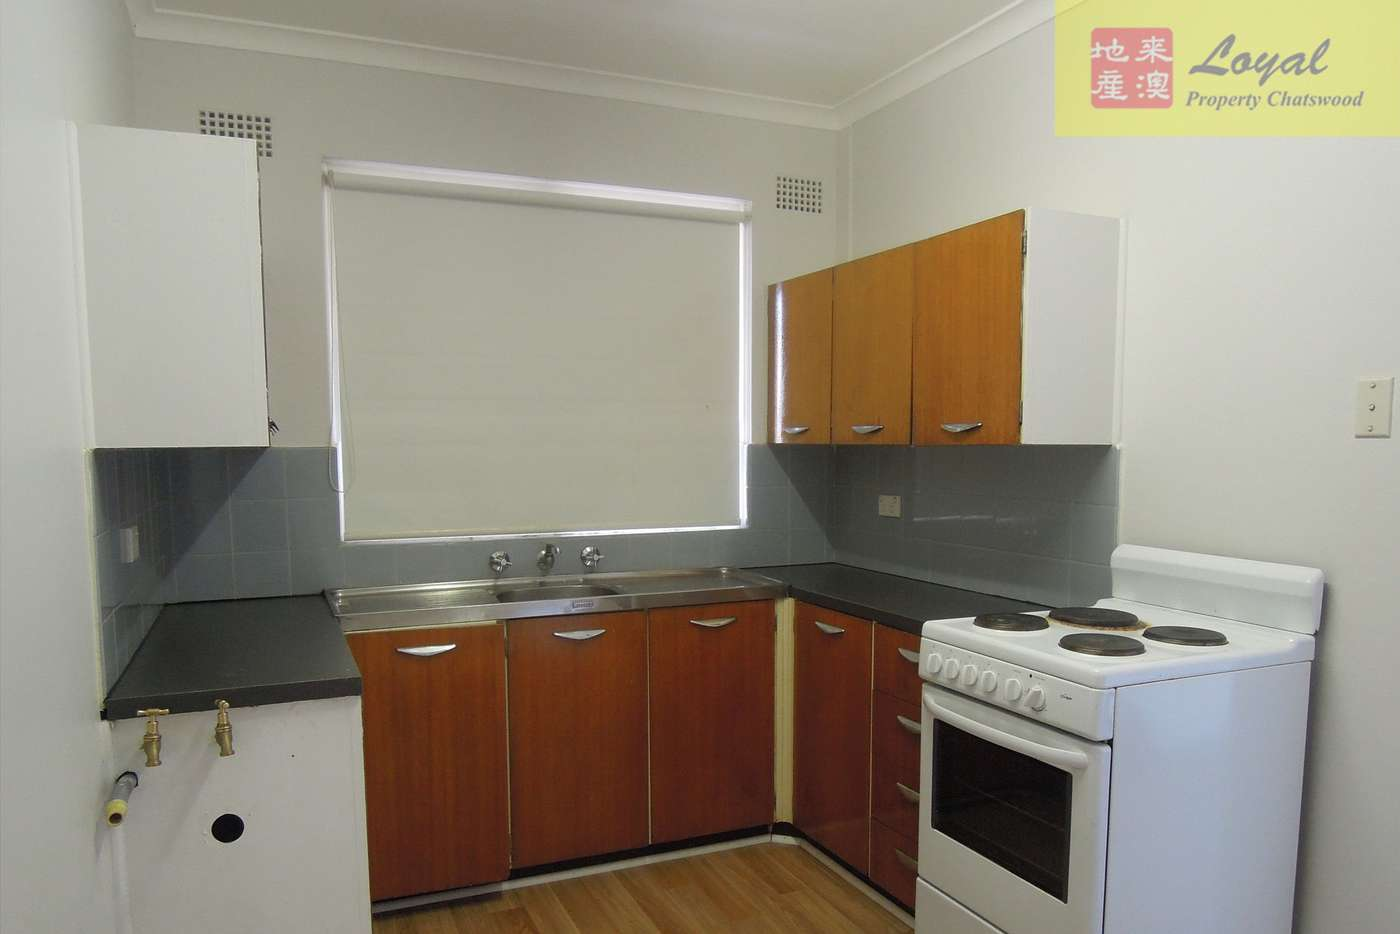 Sixth view of Homely apartment listing, 8/614 Pacific Highway, Chatswood NSW 2067